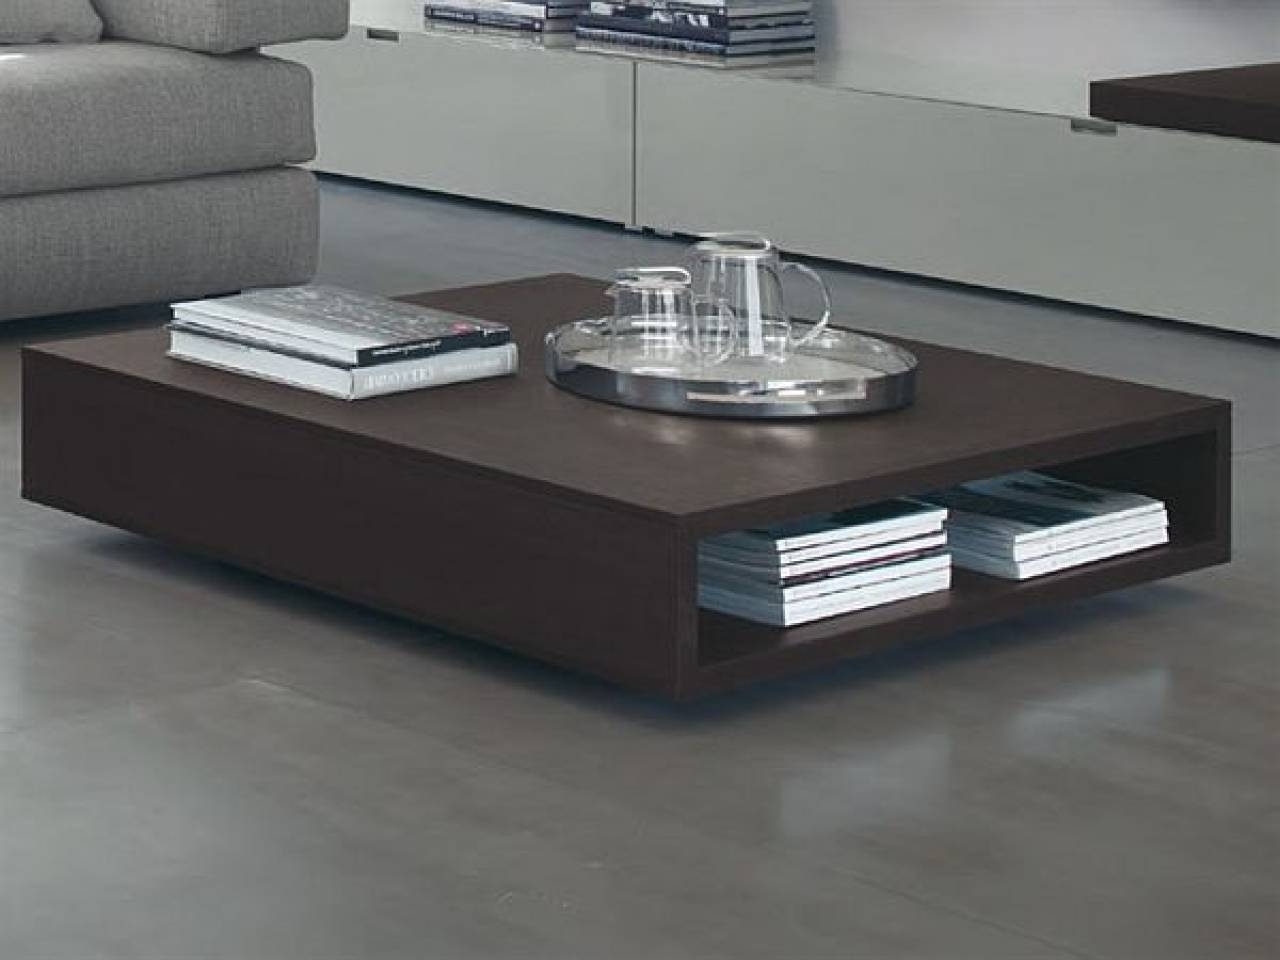 Low Modern Coffee Table | Coffee Table Ideas with regard to Low Wood Coffee Tables (Image 9 of 15)